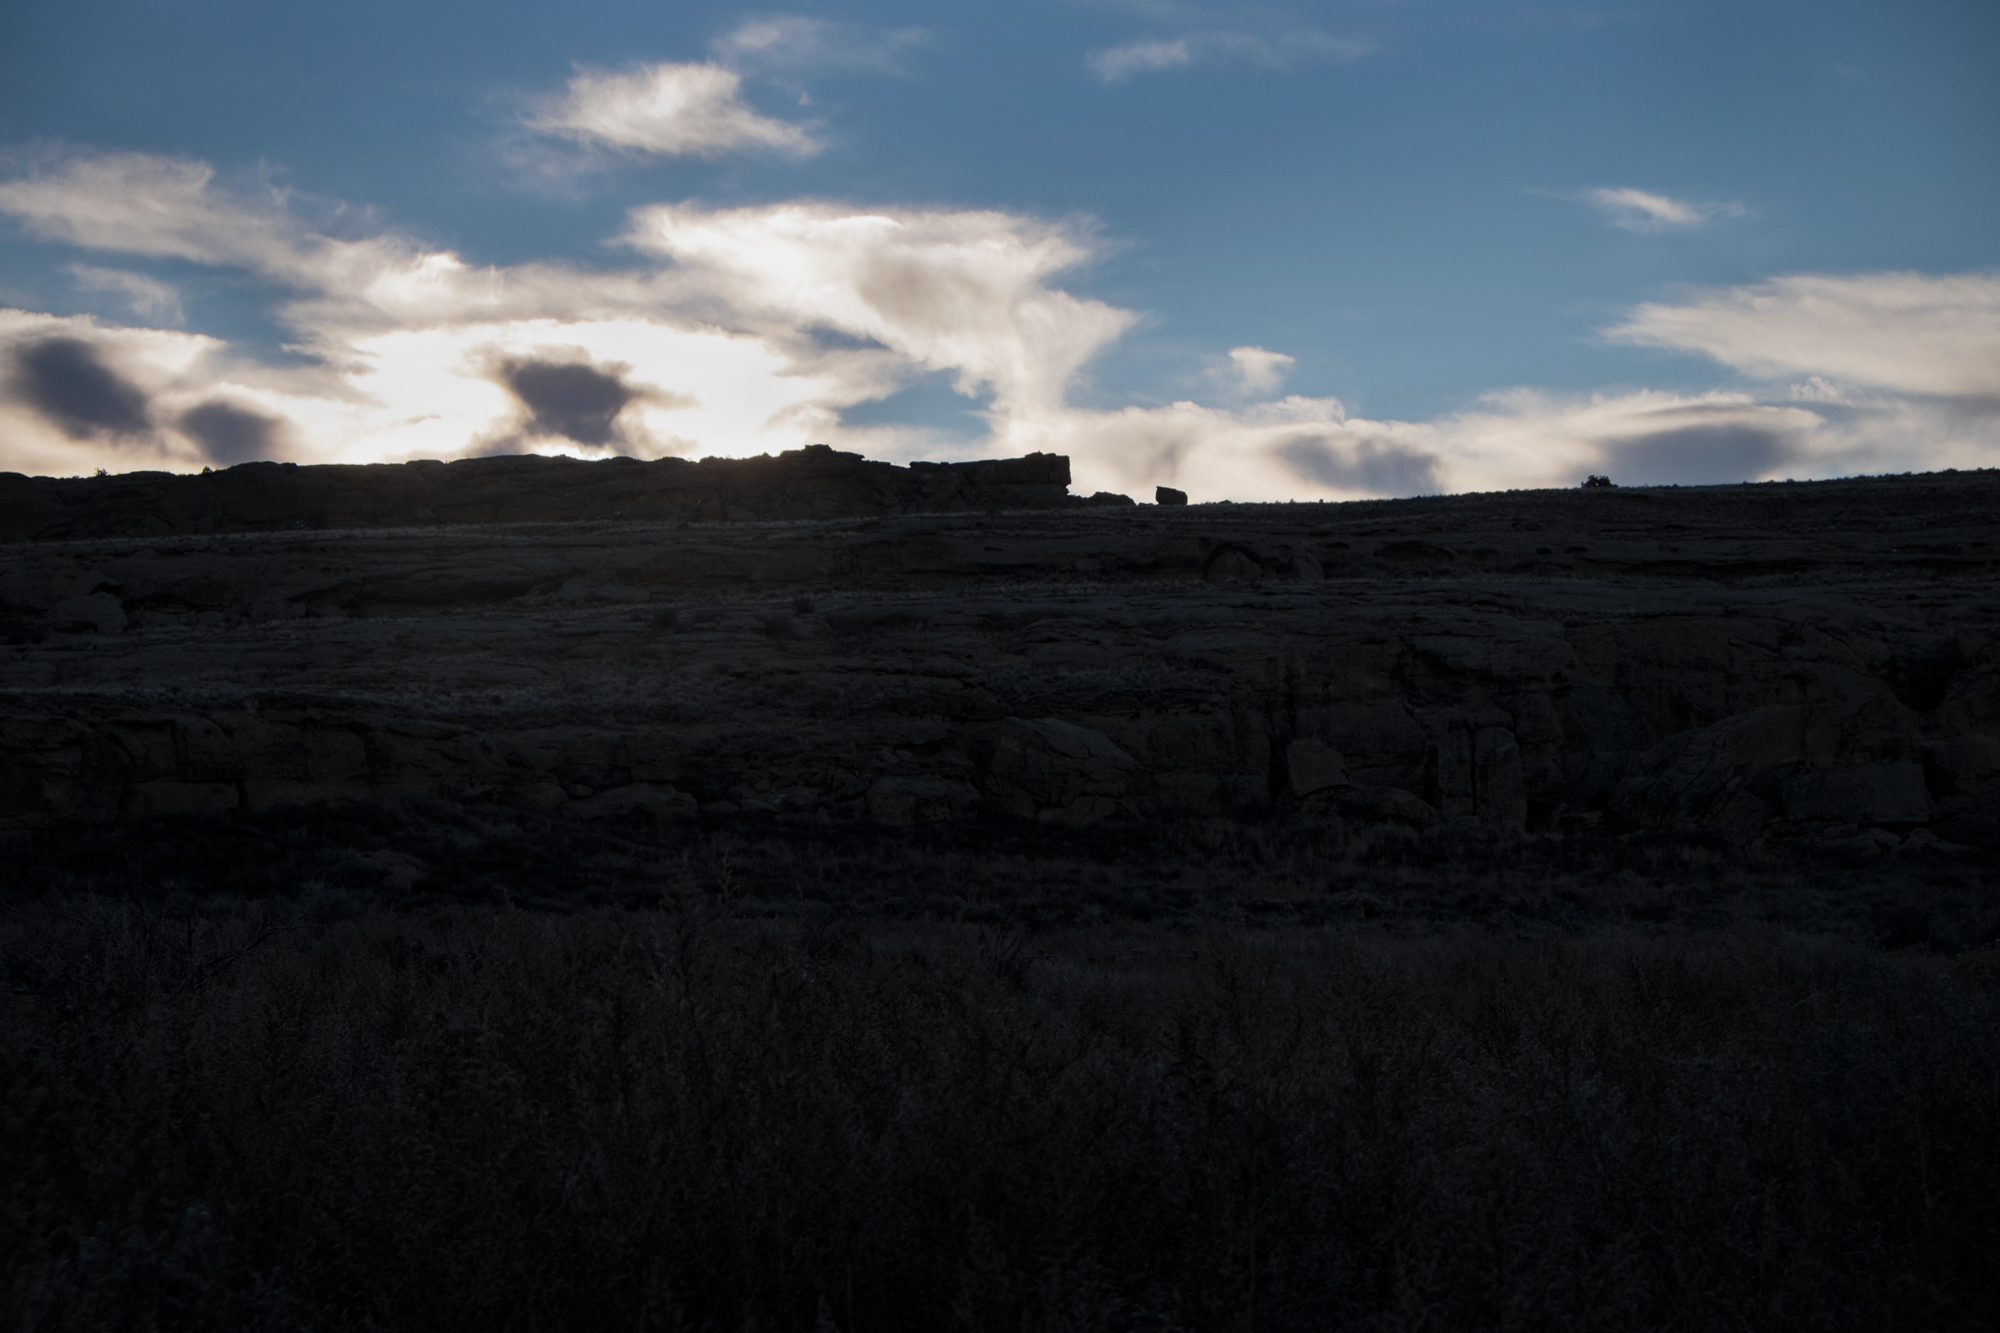 Sunrise, Chaco Canyon, New Mexico